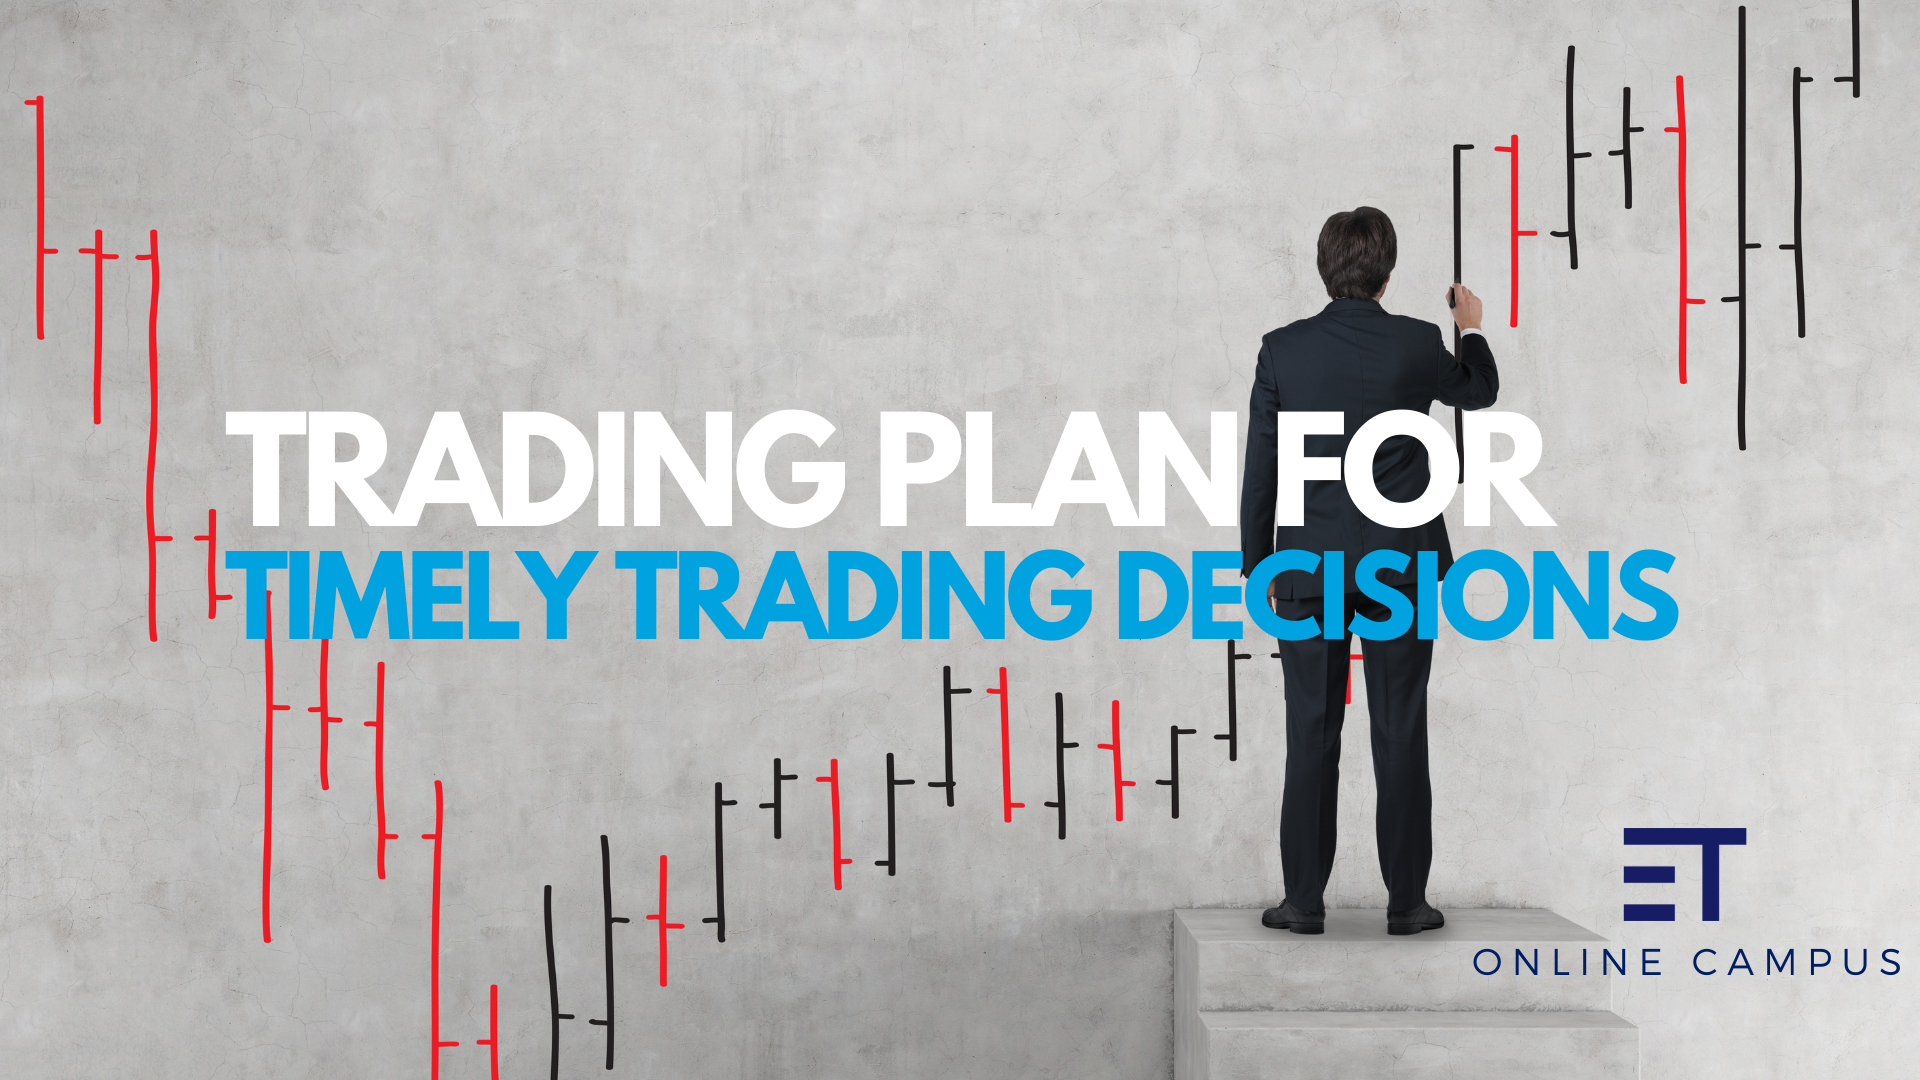 Trading Plan For Timely Trading Decisions